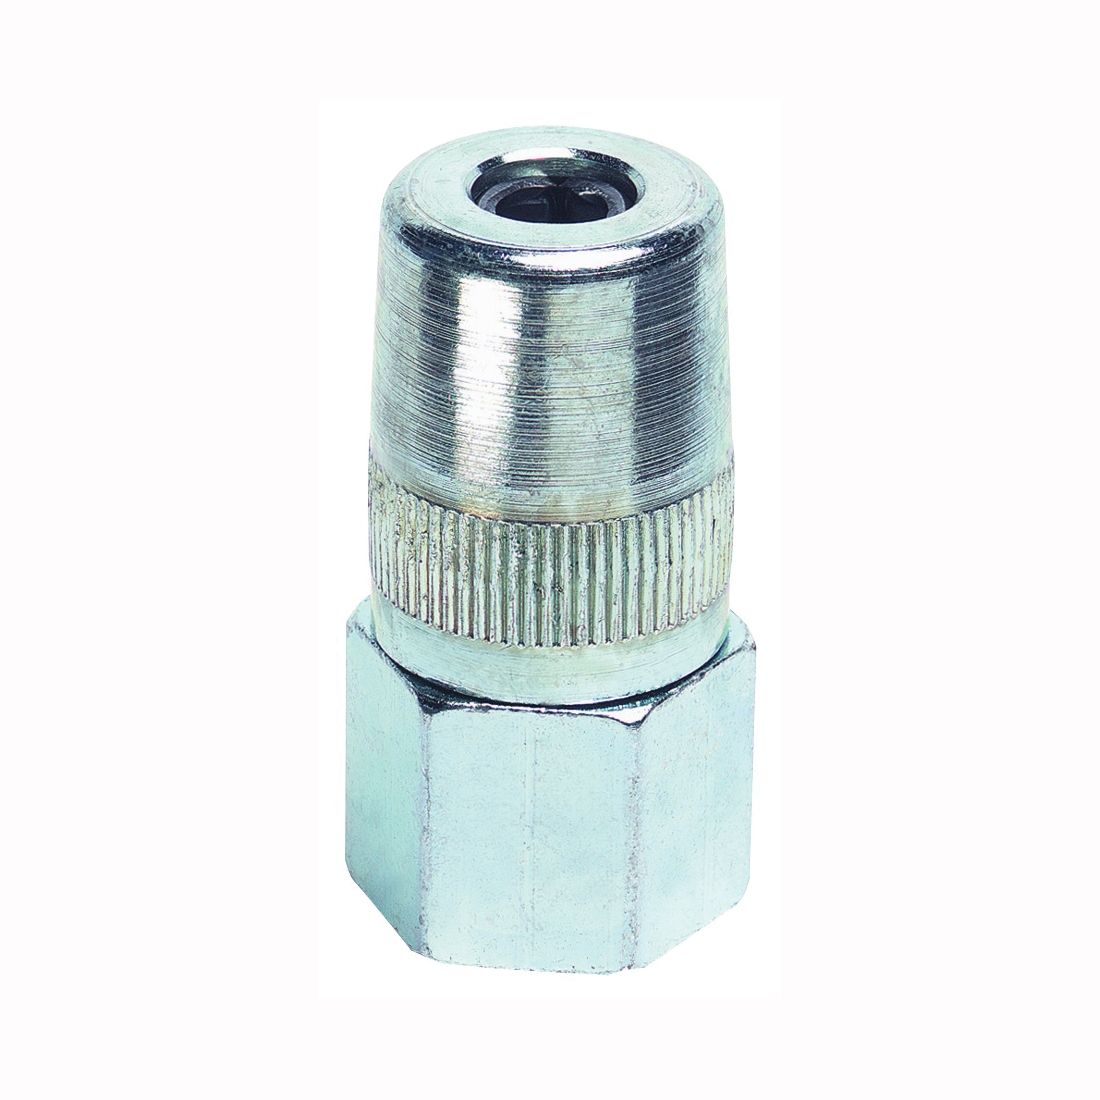 Picture of LubriMatic 05-034 Coupler, 1/8 in, 1-1/2 in L, 6000 psi Pressure, Steel